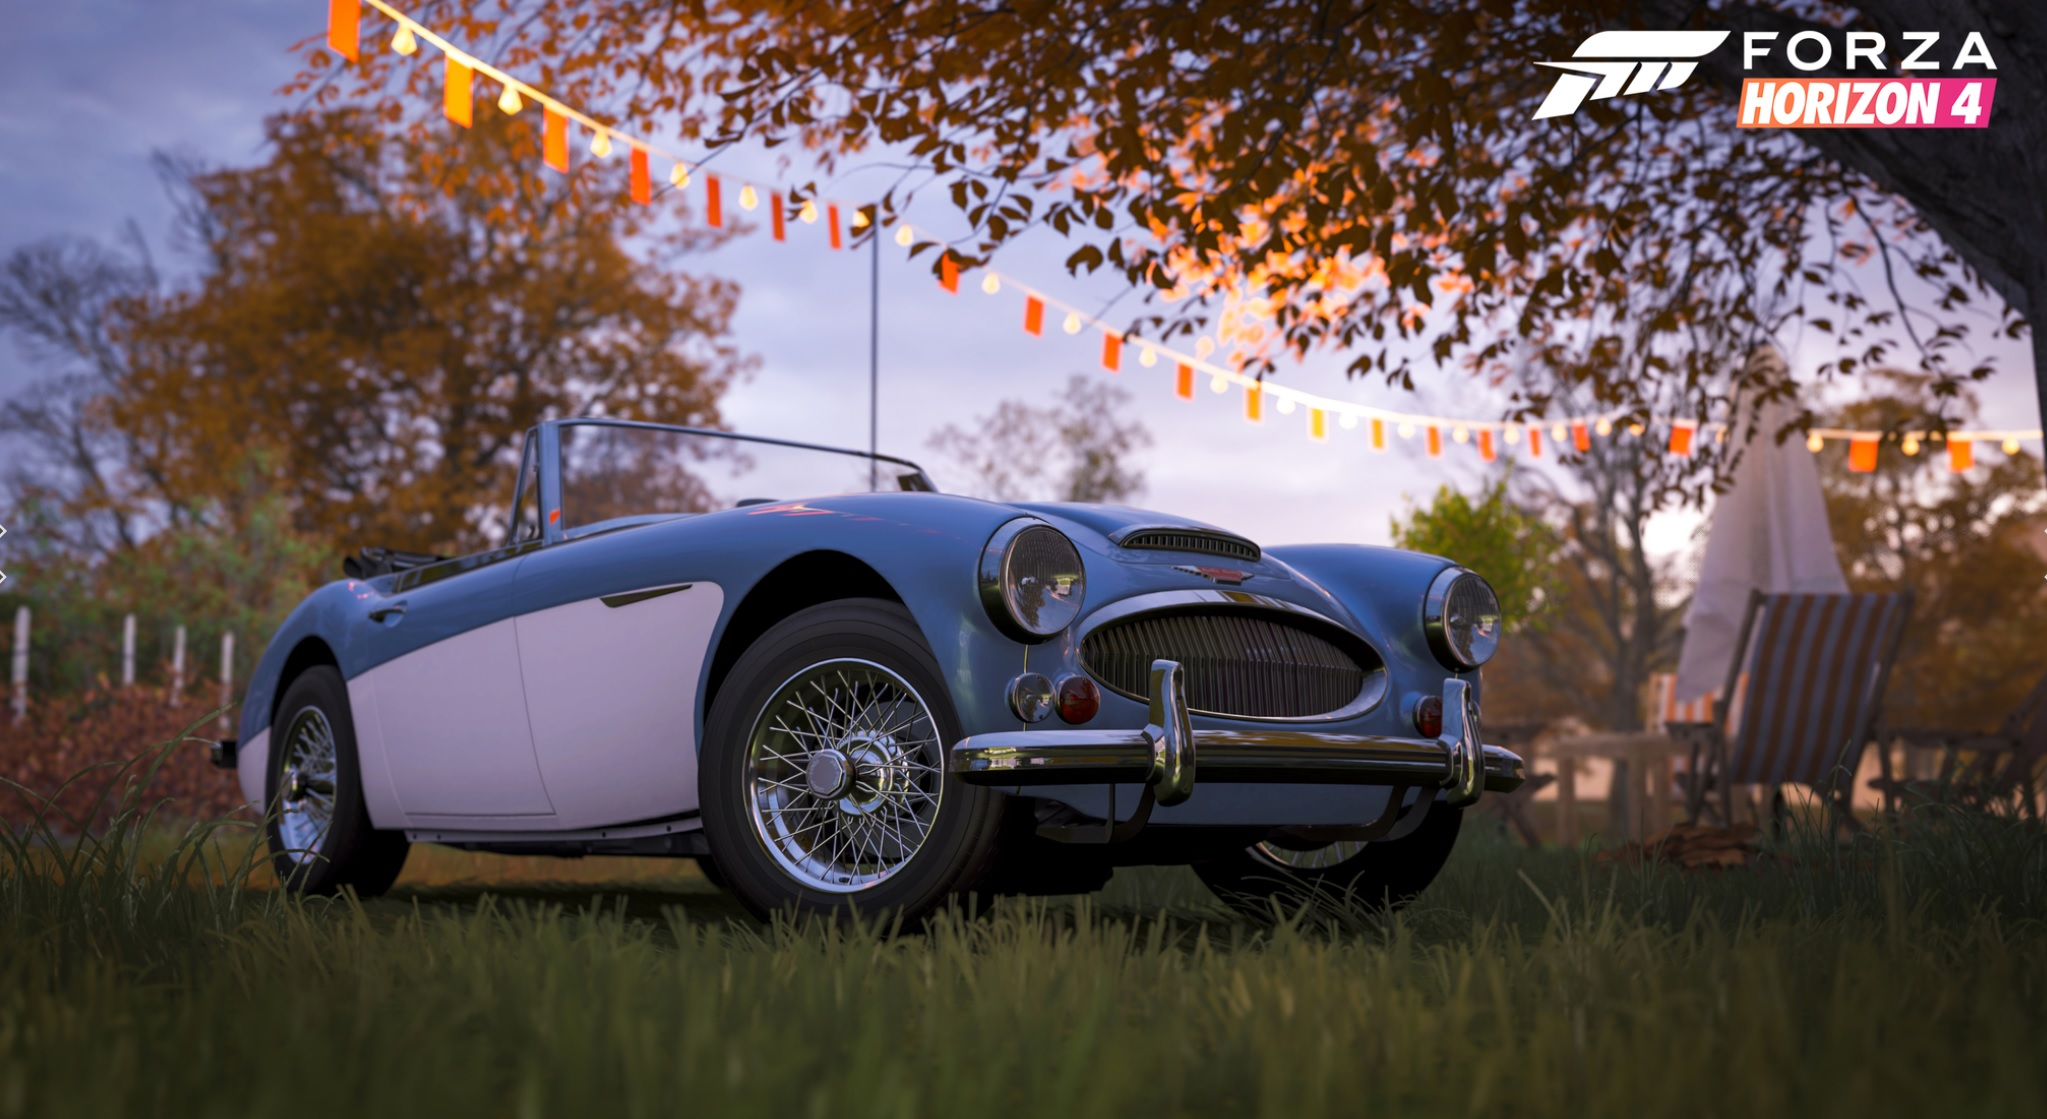 Forza Horizon 4 makes Xbox Game Pass a must-have | VentureBeat